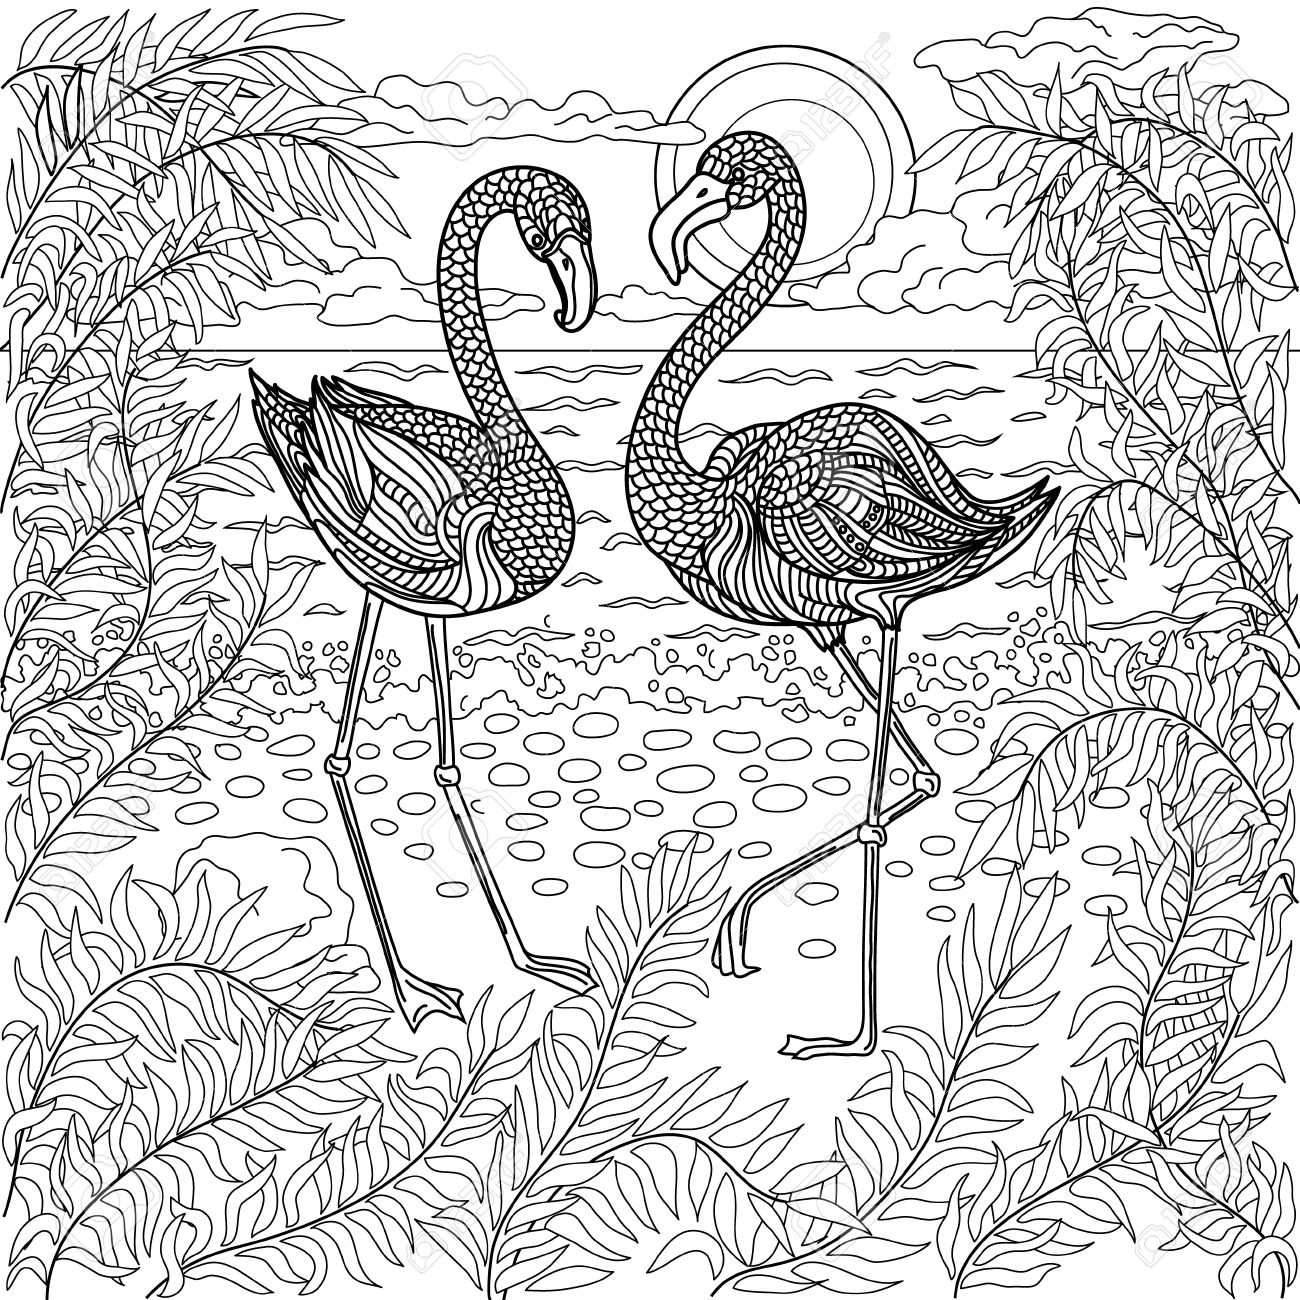 Coloring sheets for adults flamingo - Hand Drawn Birds Flamingos In A Branches Tree On The Sea Beach Coloring Page